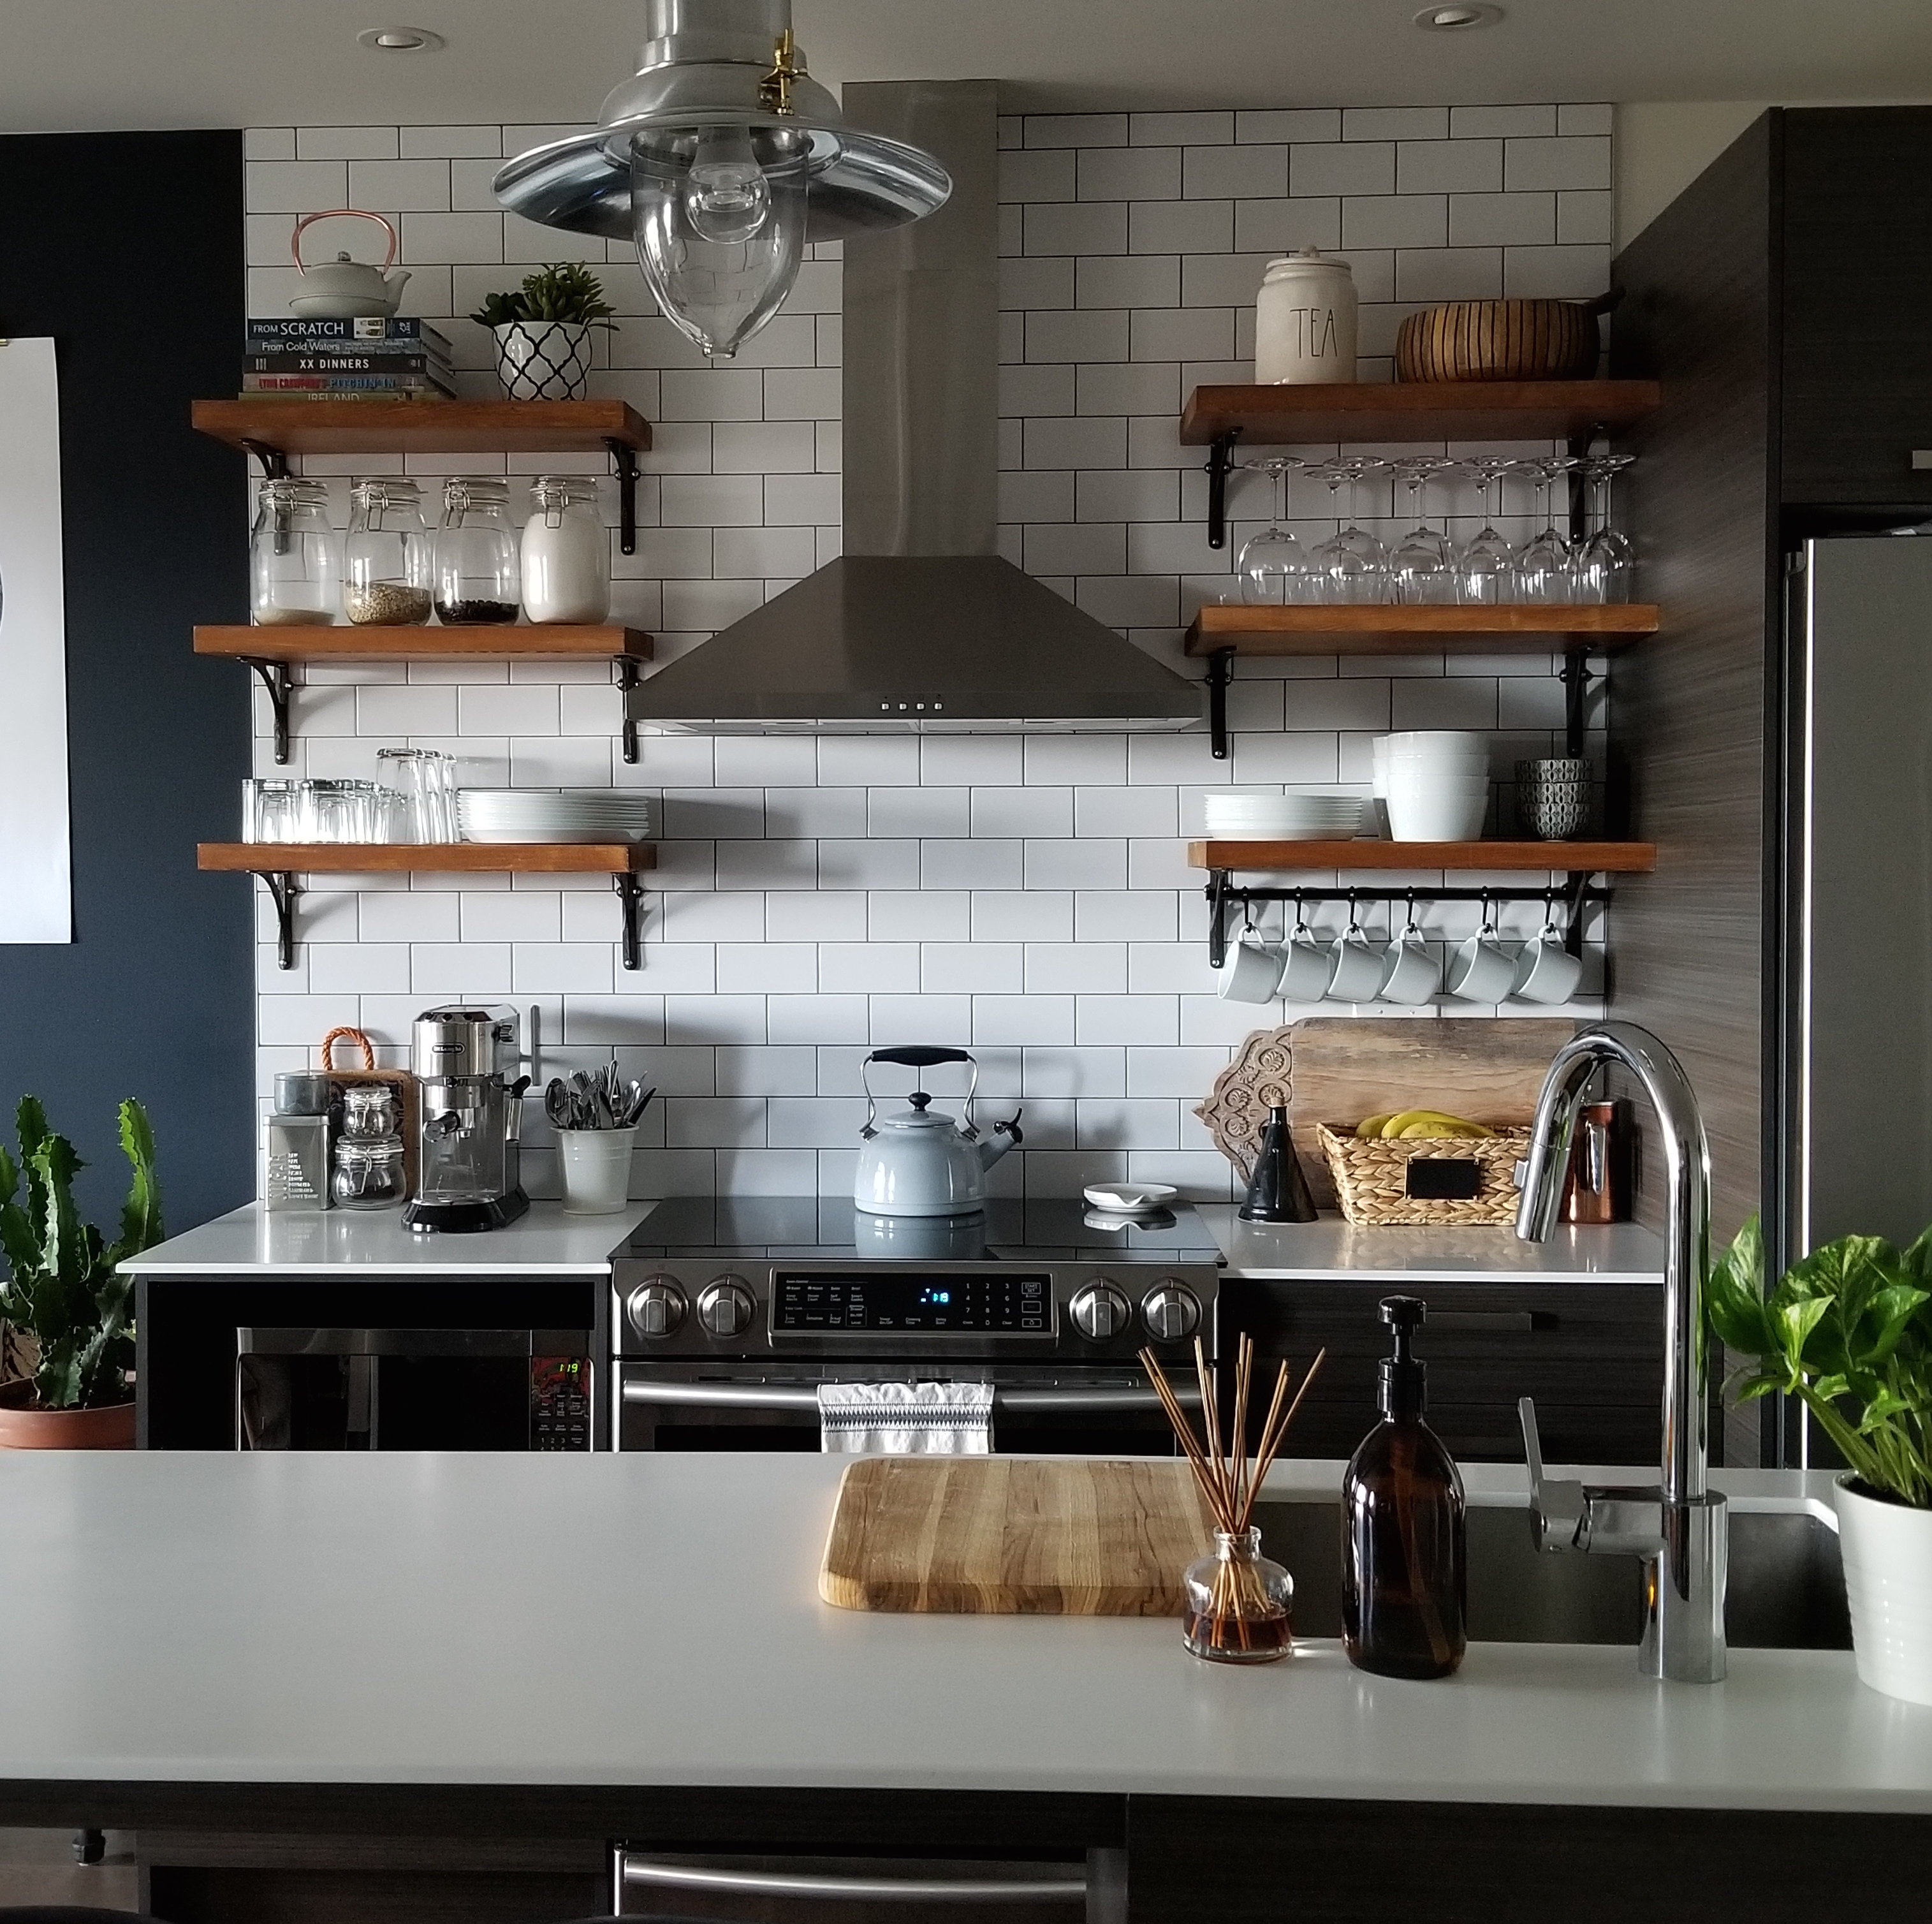 Kitchen Shelves Instead Of Cabinets Small Space Living 5 Design Mistakes You Should Avoid